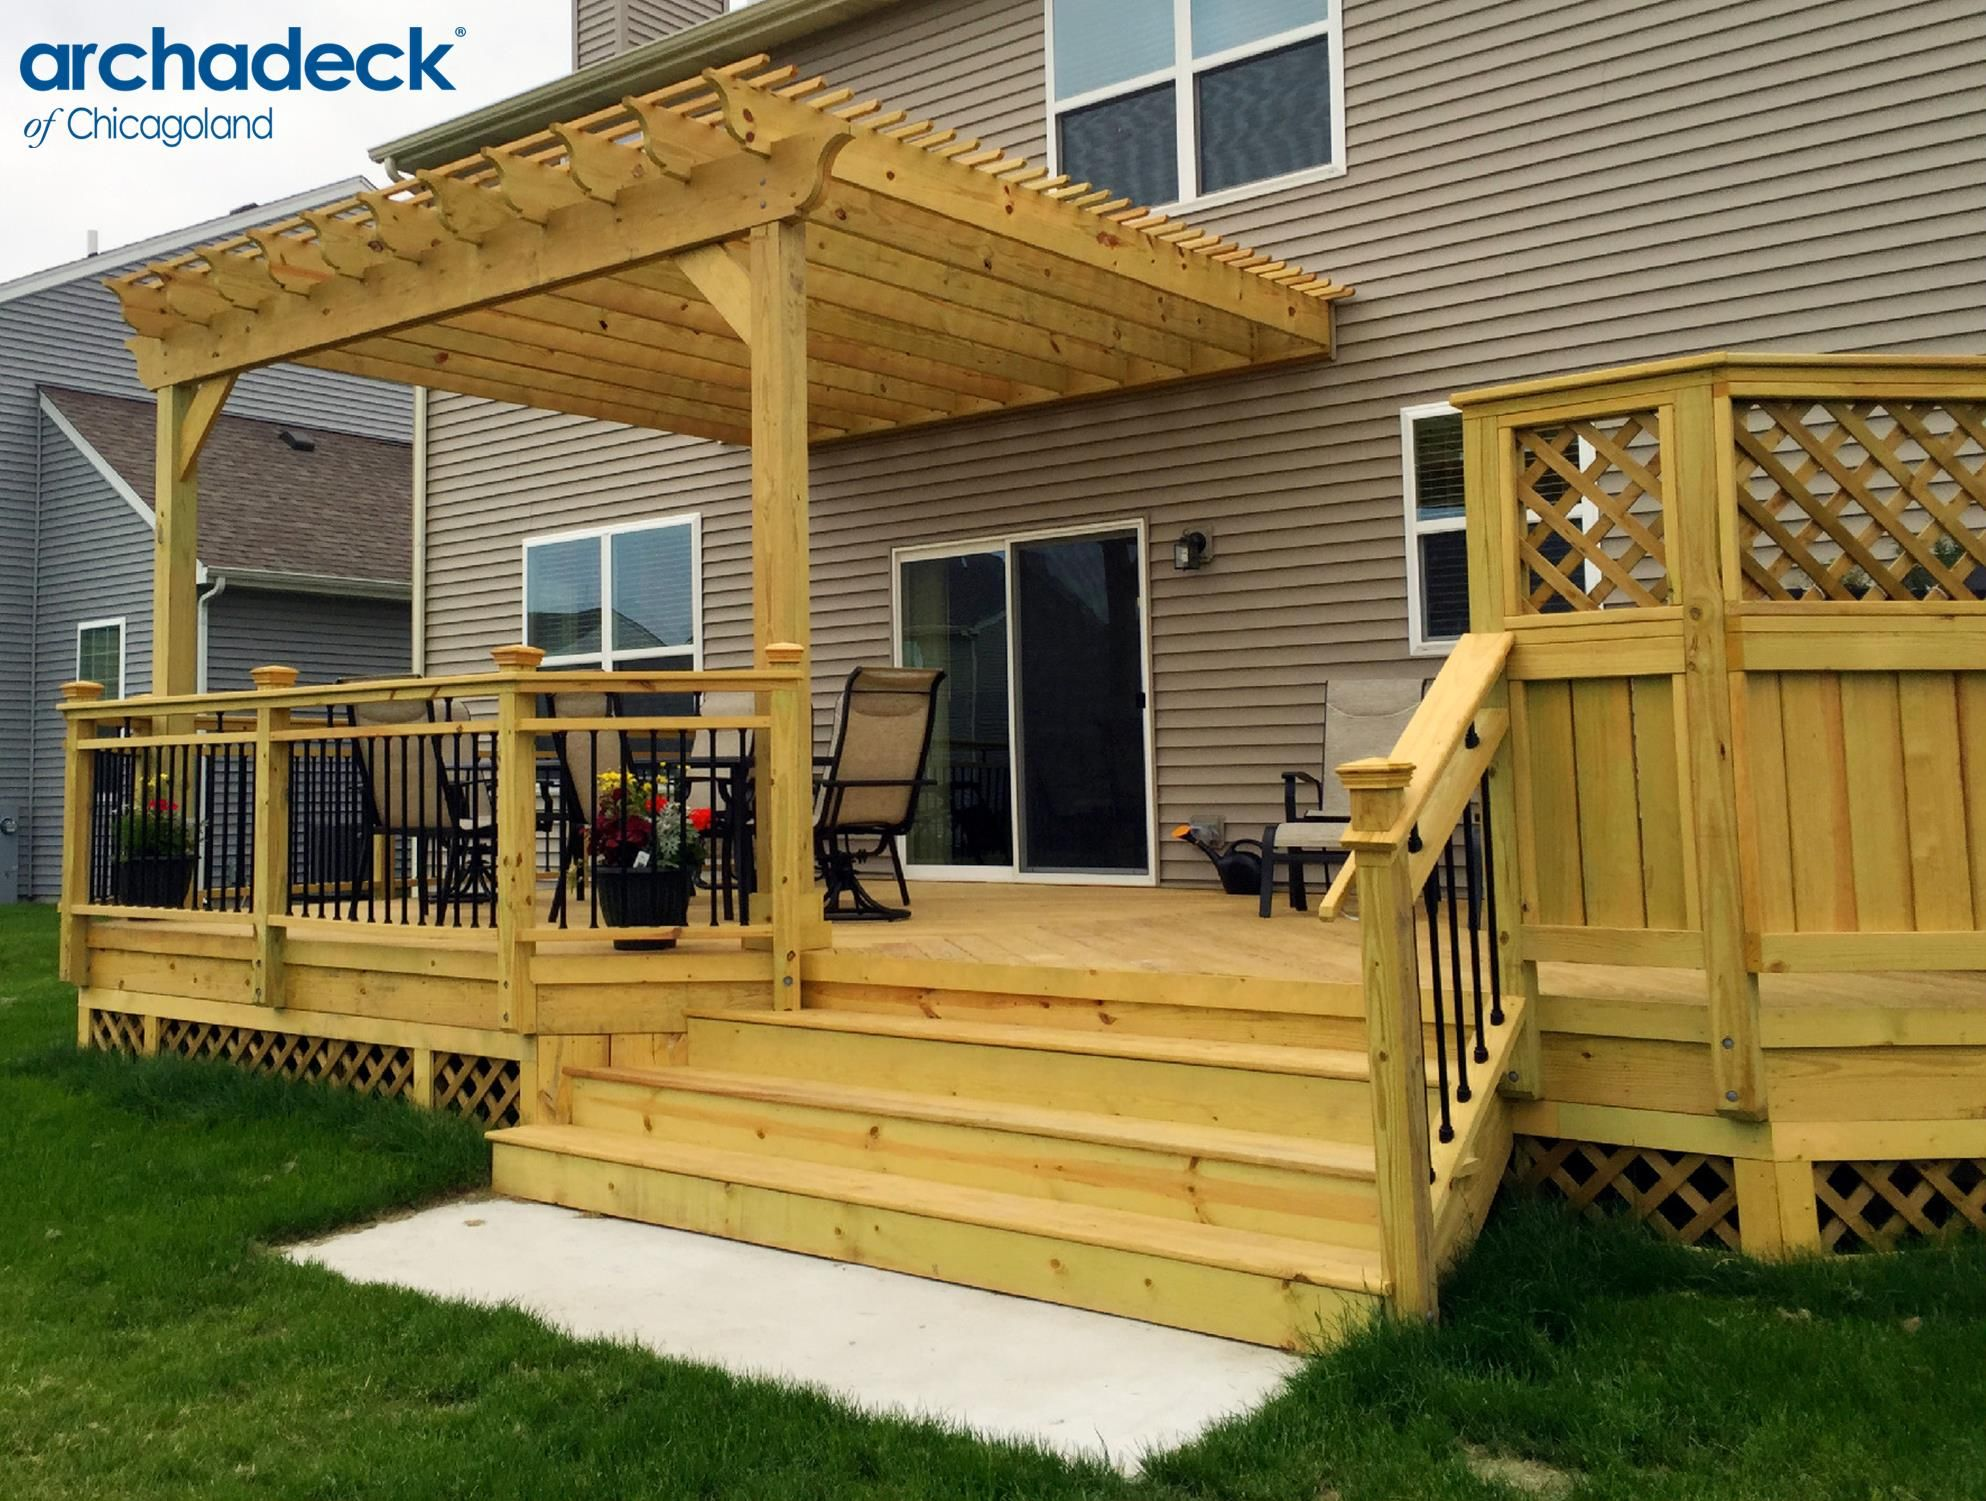 Best 25+ Backyard deck designs ideas on Pinterest | Decks, Backyard decks  and Gazebo ideas